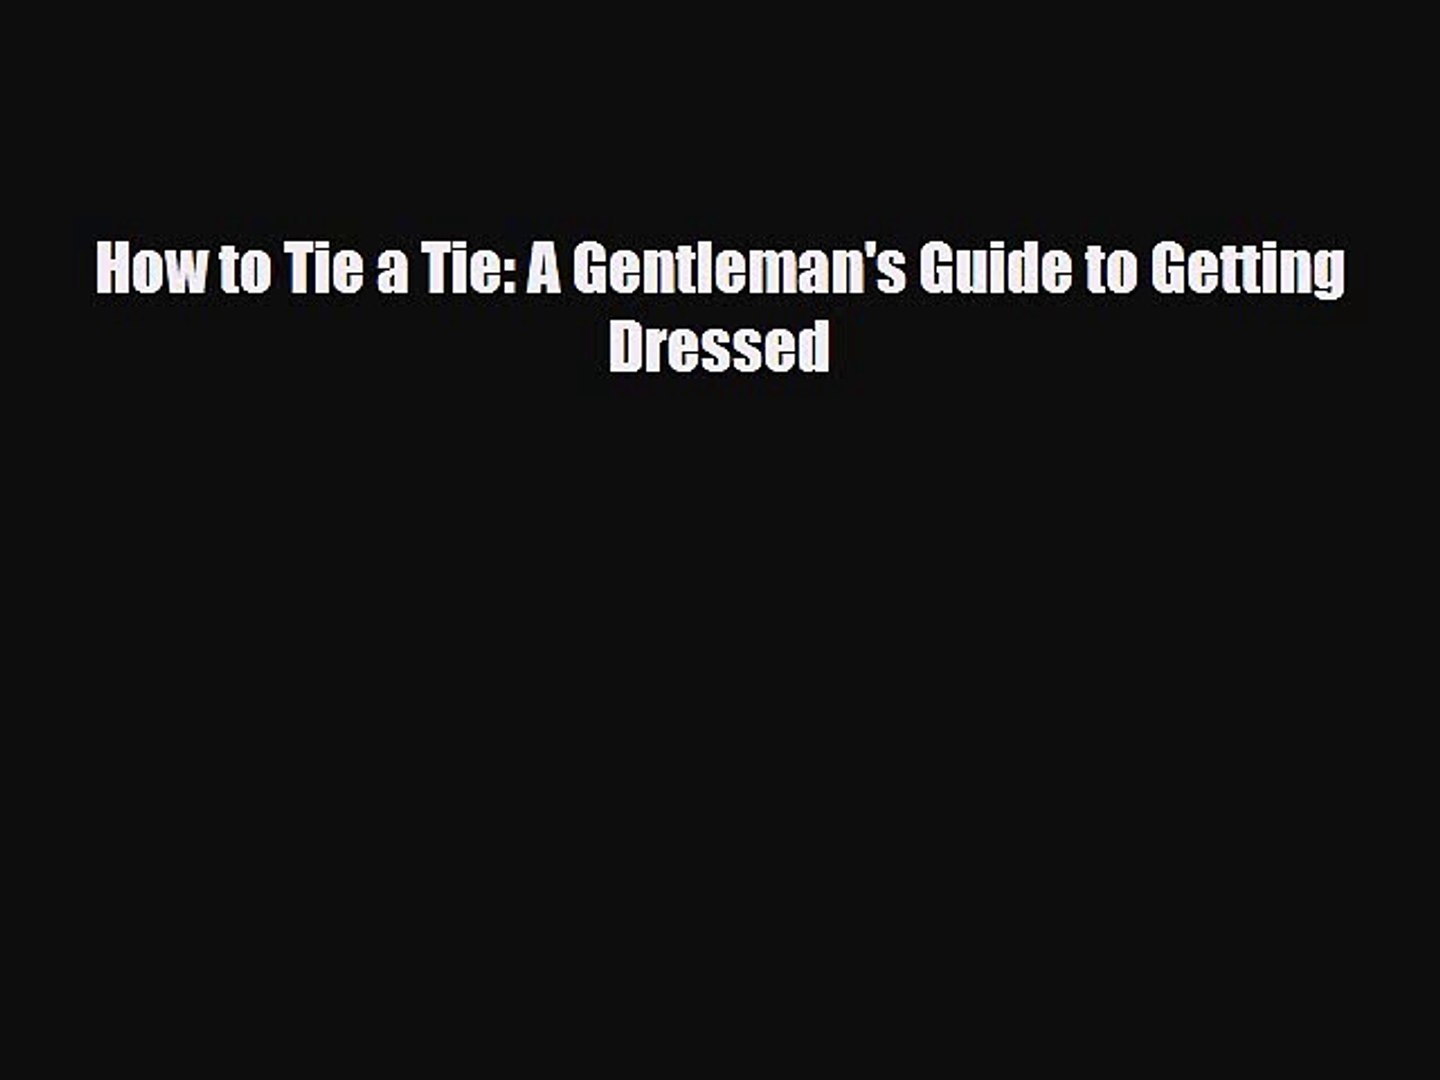 Read How to Tie a Tie: A Gentleman's Guide to Getting Dressed Ebook Free